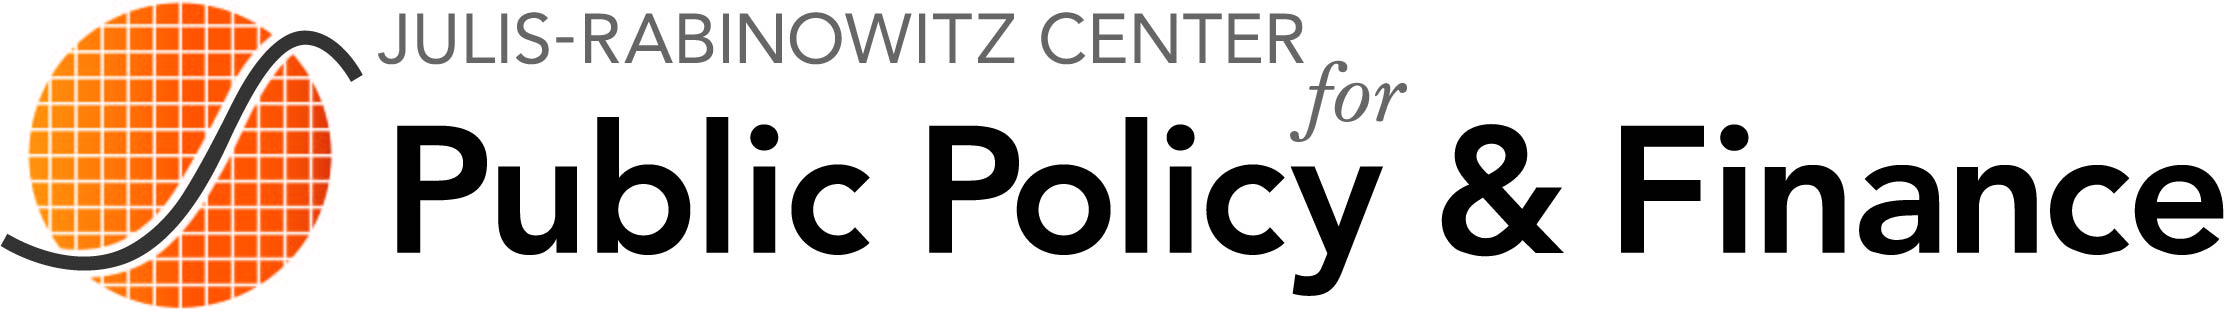 The Julis-Rabinowitz Center for Public Policy and Finance, Princeton University